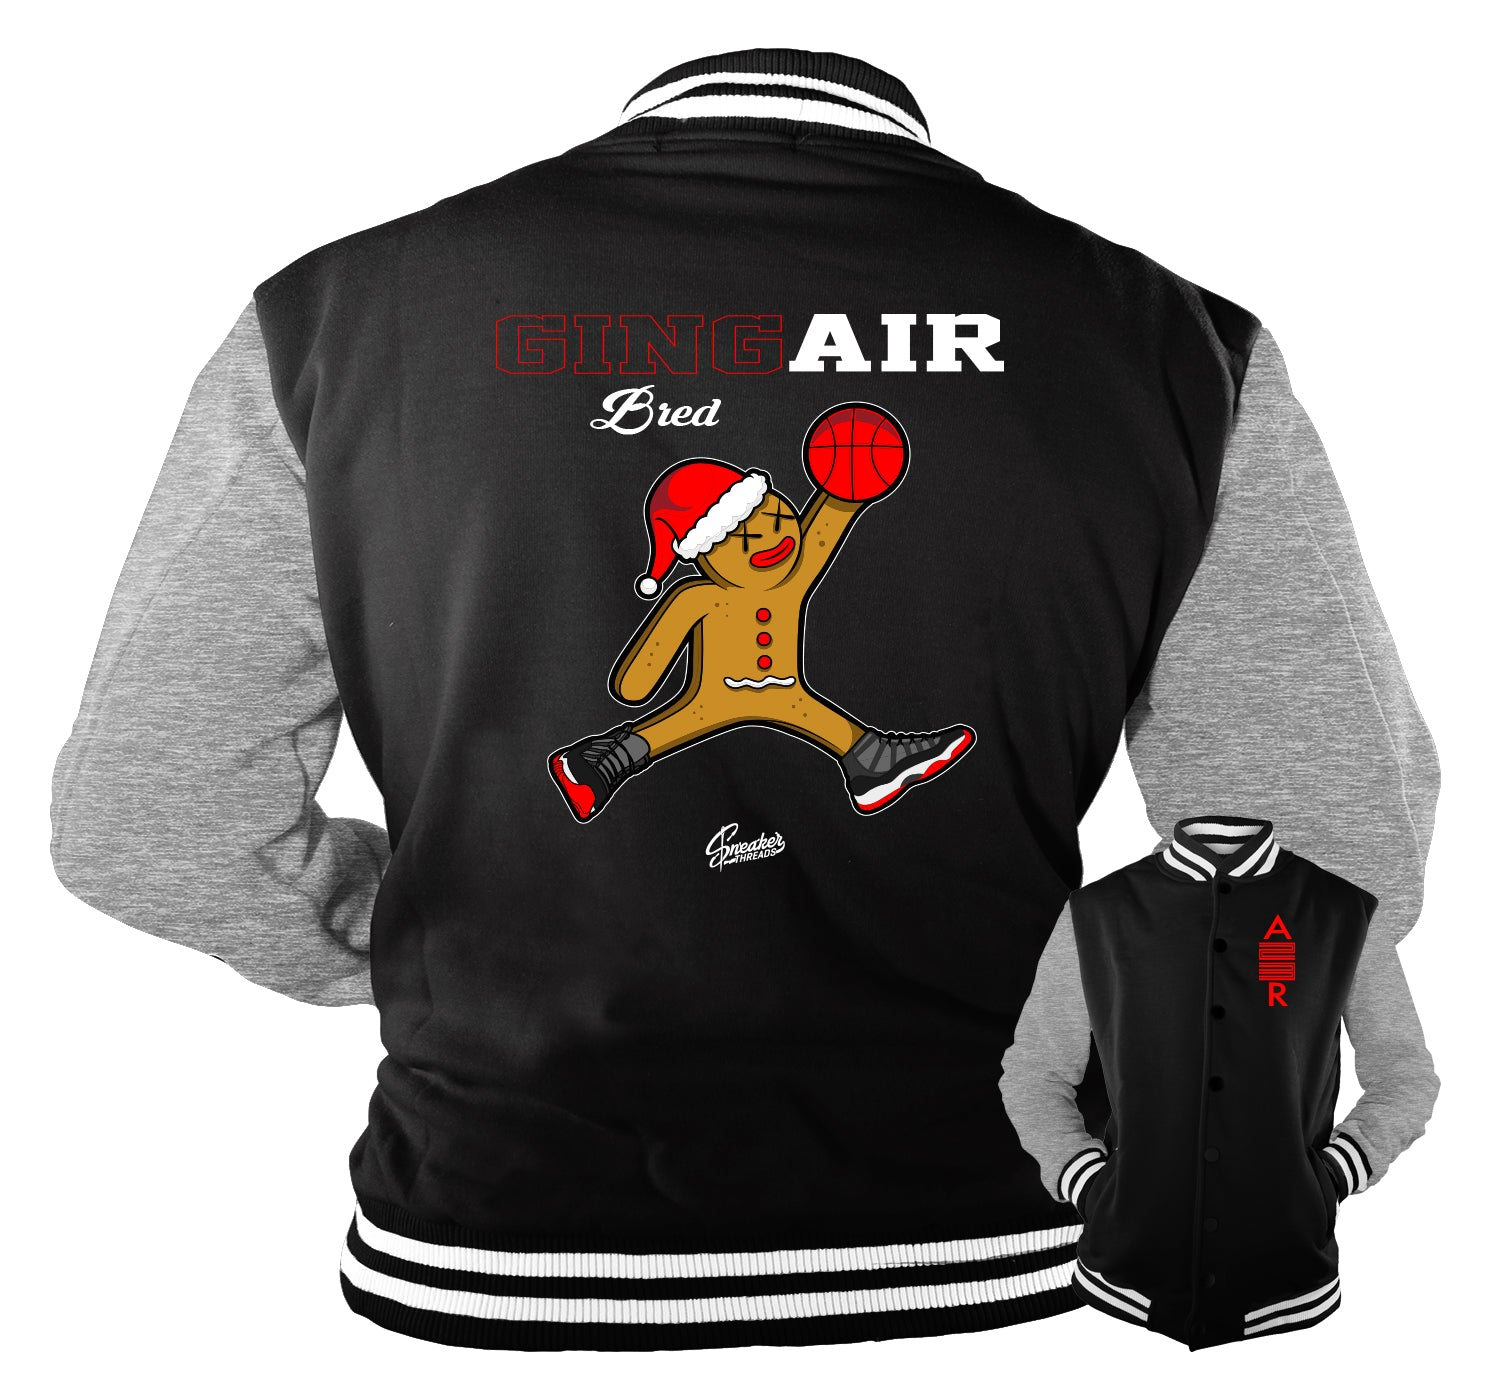 Jordan 11 bred sneaker matching cotton jackets